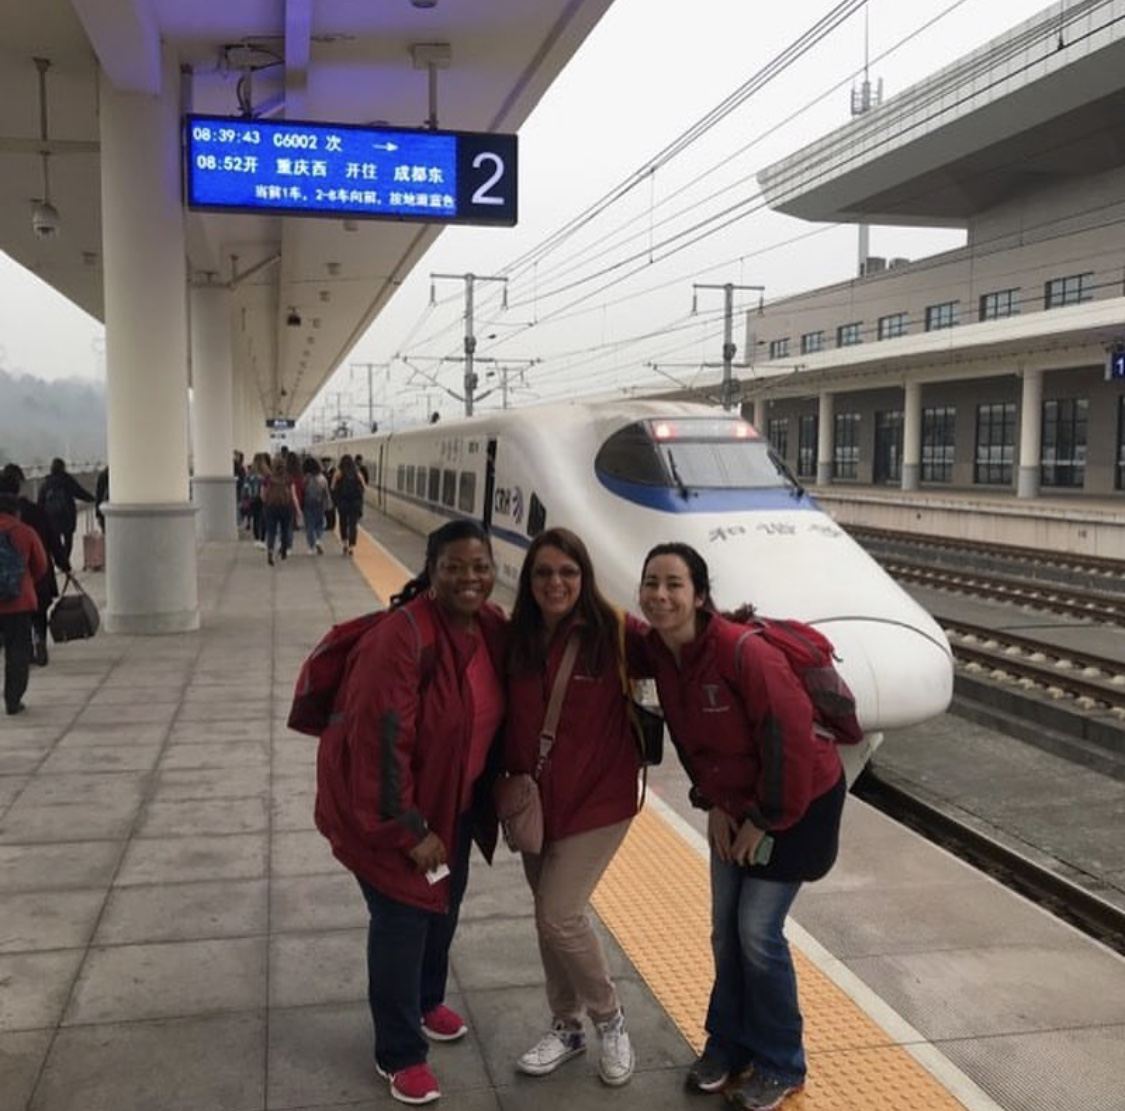 Dr. Price and her students getting ready to board the bullet train in China